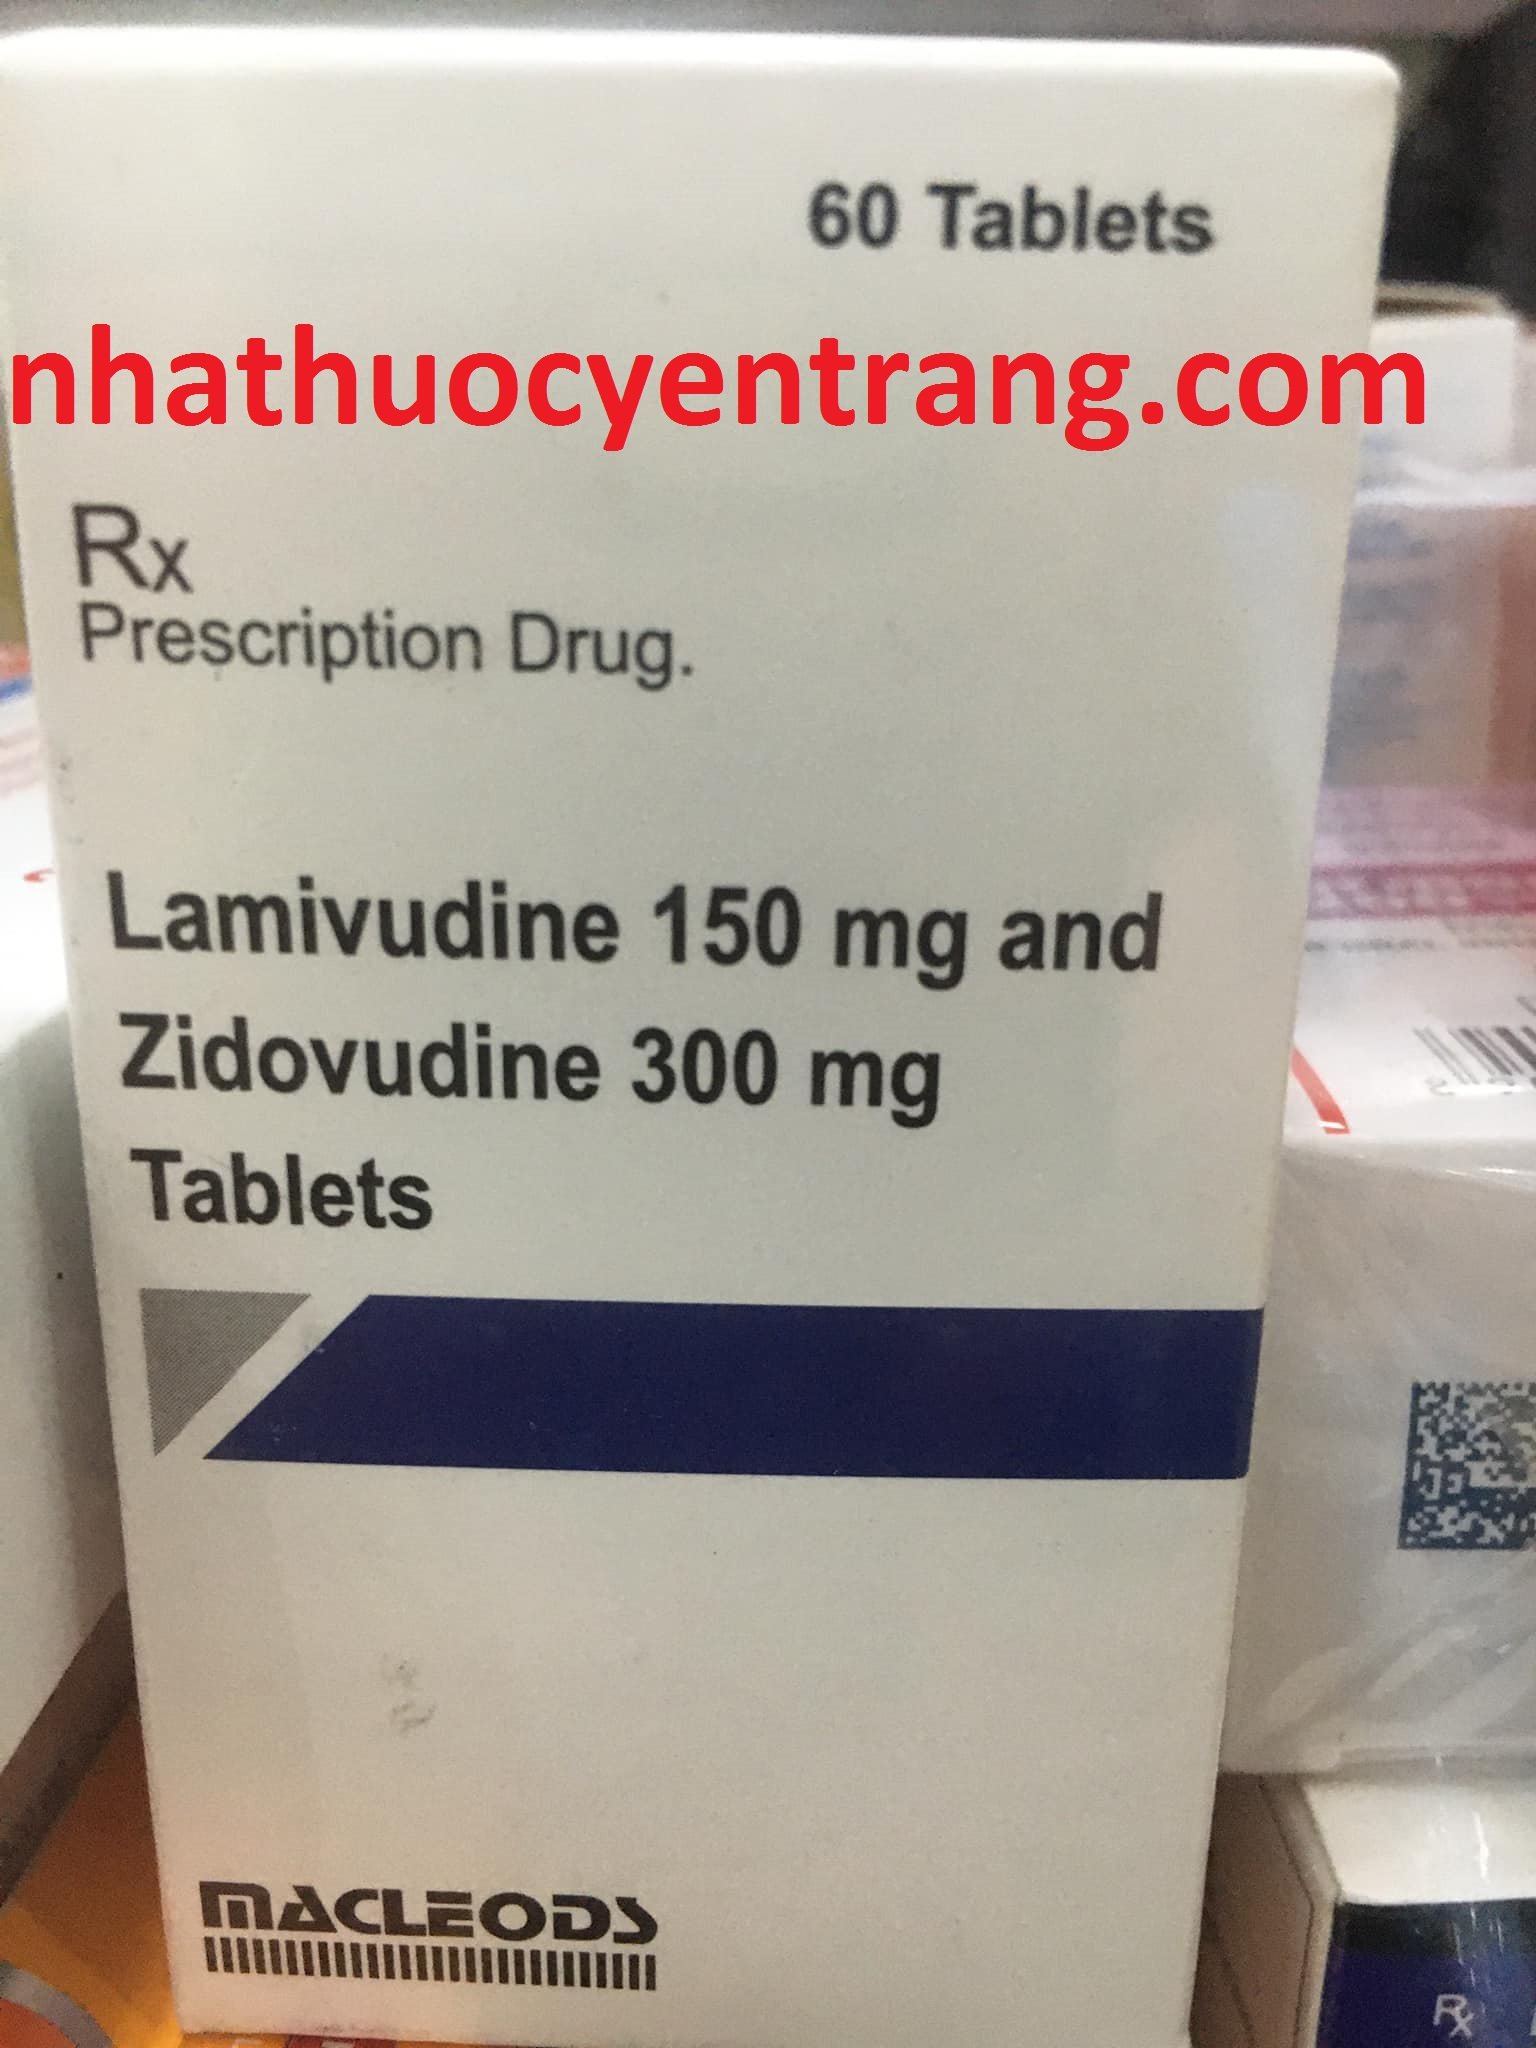 Lamivudine 150mg and Zidovudine 300mg